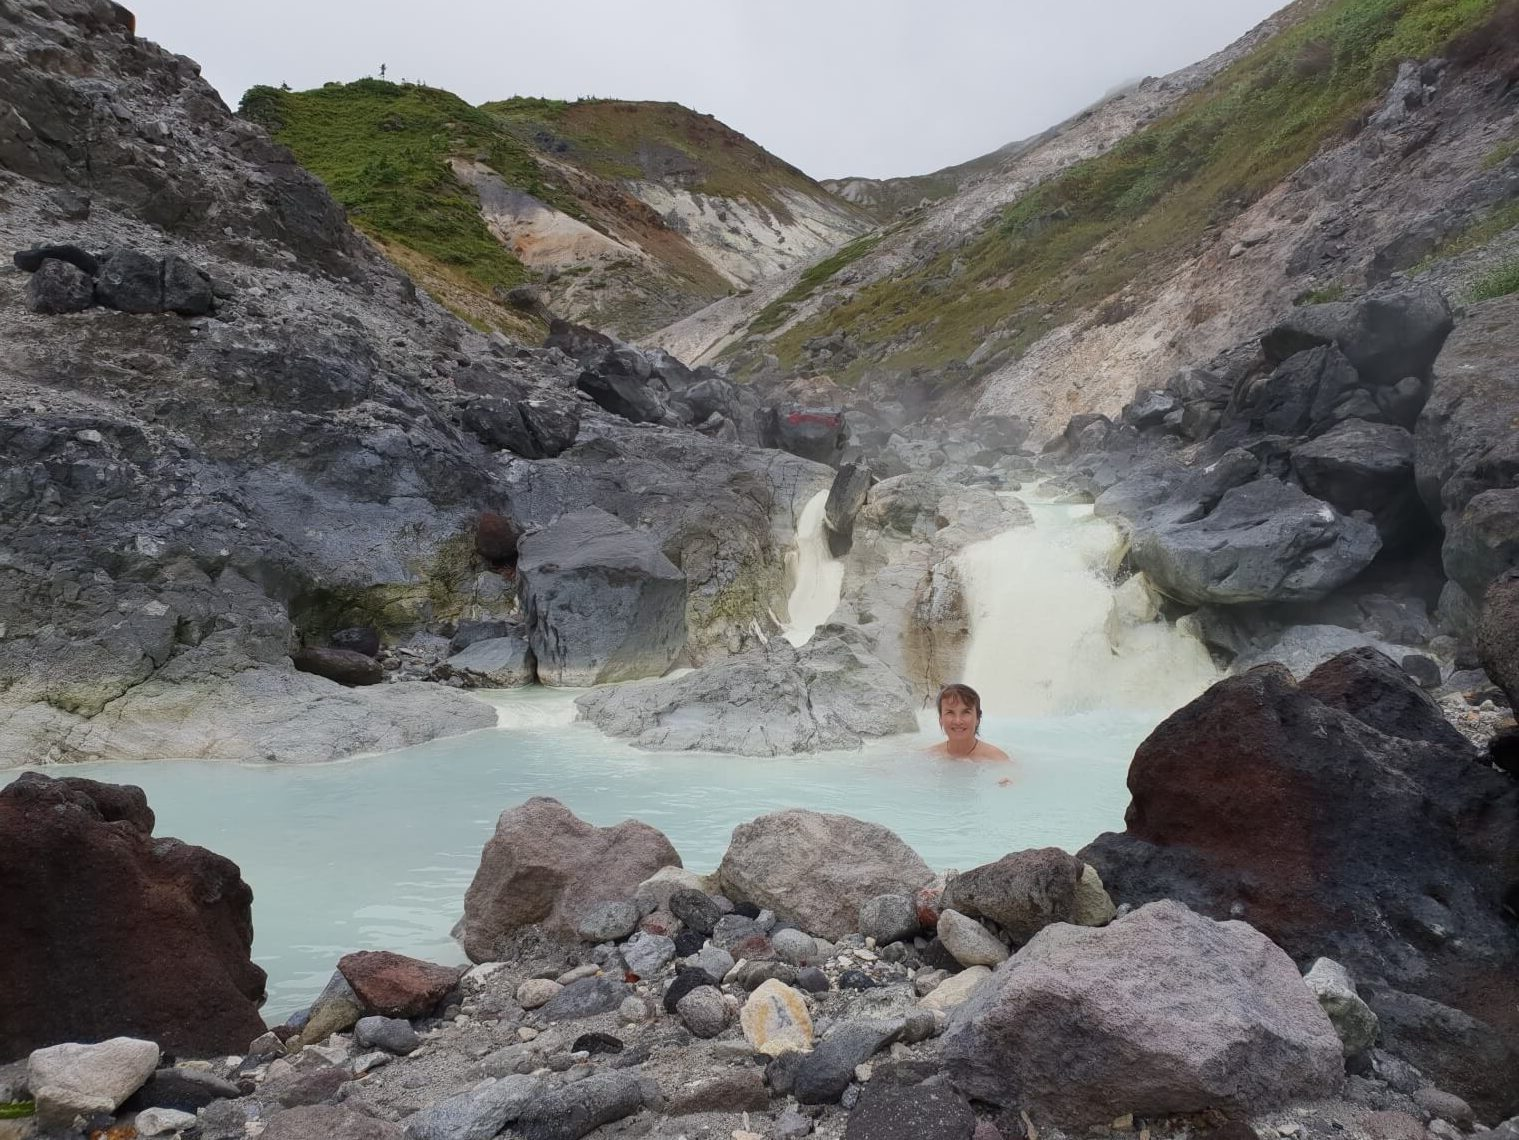 A day-hike in Towada-Hachimantai National Park leads to this hot sulfur stream